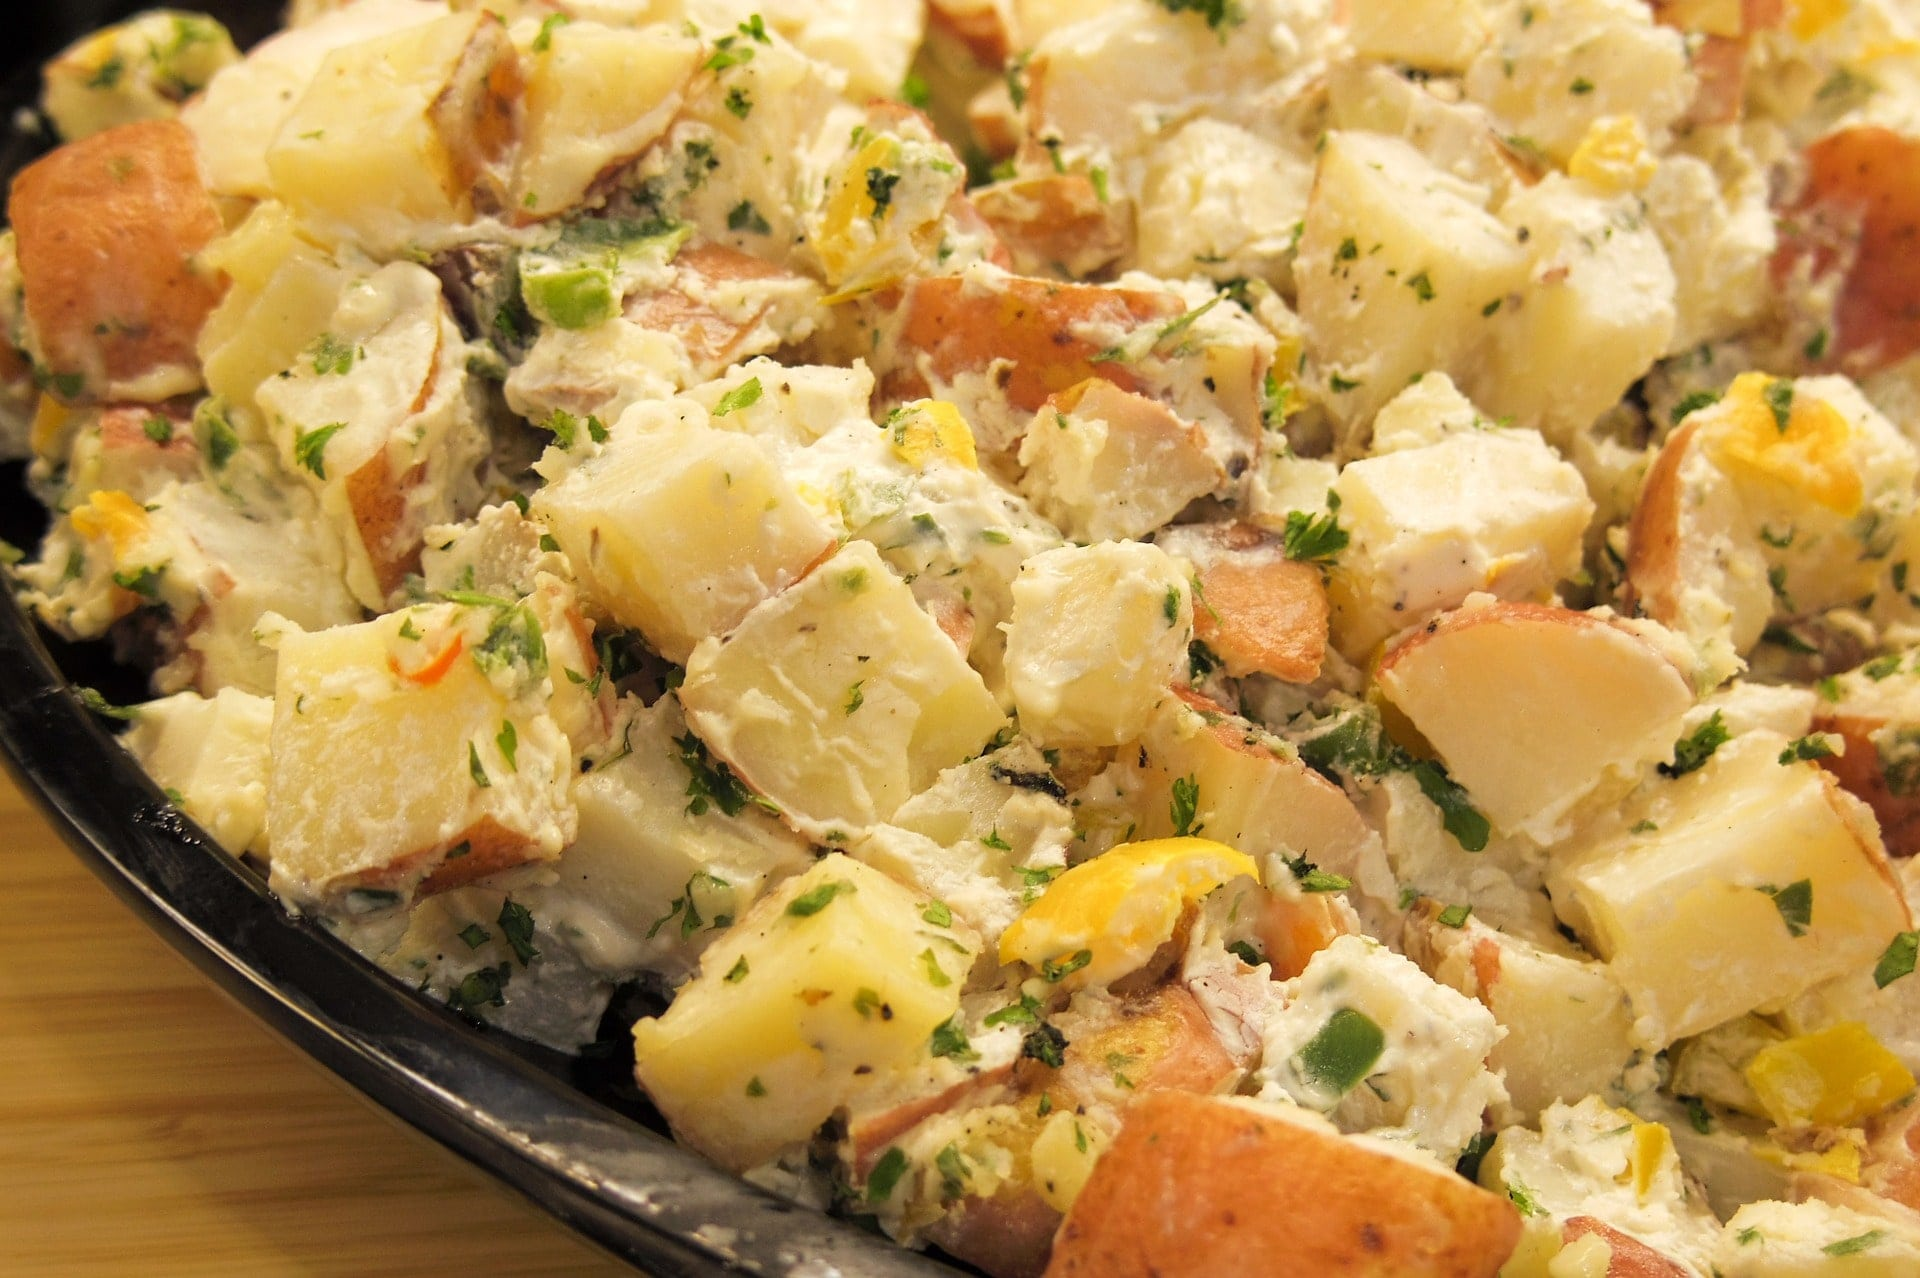 potato salad - Who doesn't love a delicious, creamy potato salad?If you're a big fan of the creamy, mayo packed potato salad then Cooking Classy's classic potato salad is the recipe for you.Barefeet in the Kitchen's Italian Potato Salad is a mayo-free zone, so for those of you begging for a lighter but extremely tasty recipe then look no further. This uses salami and zesty flavours, perfect for summer.*Image shown is not from the recipes provided.